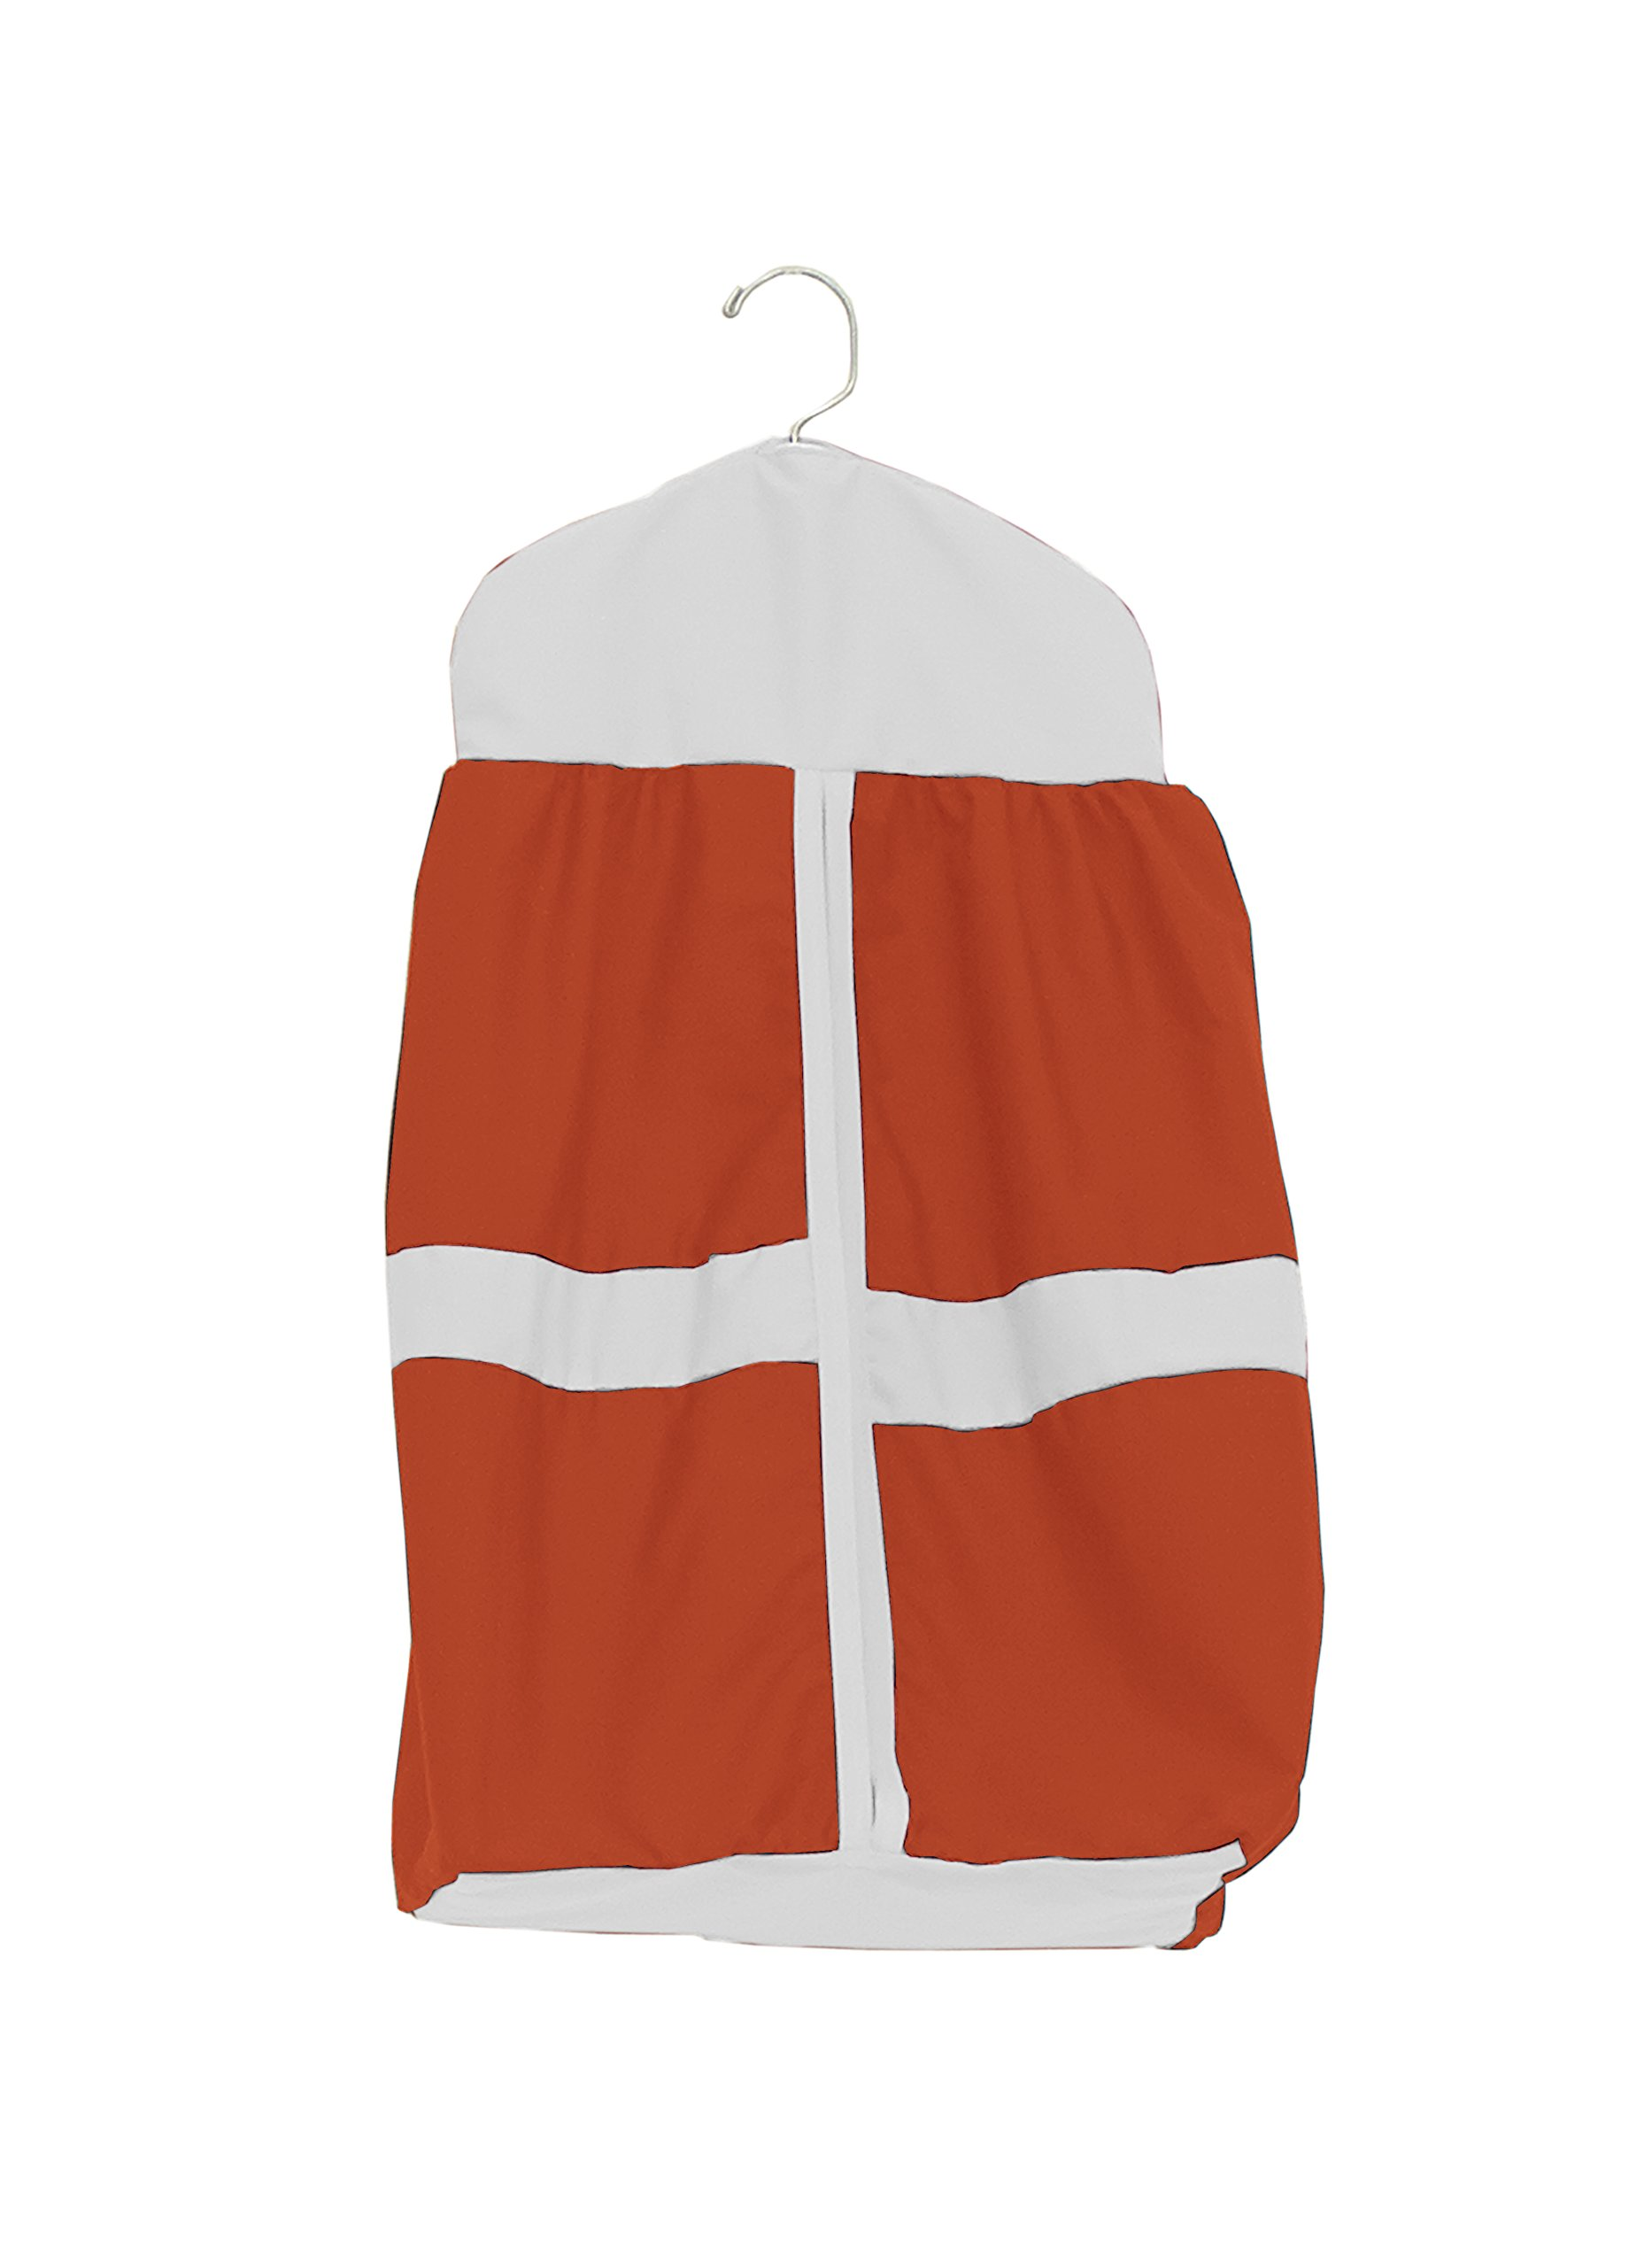 Baby Doll Bedding Solid Stripe Diaper Stacker, Orange/White by BabyDoll Bedding (Image #1)